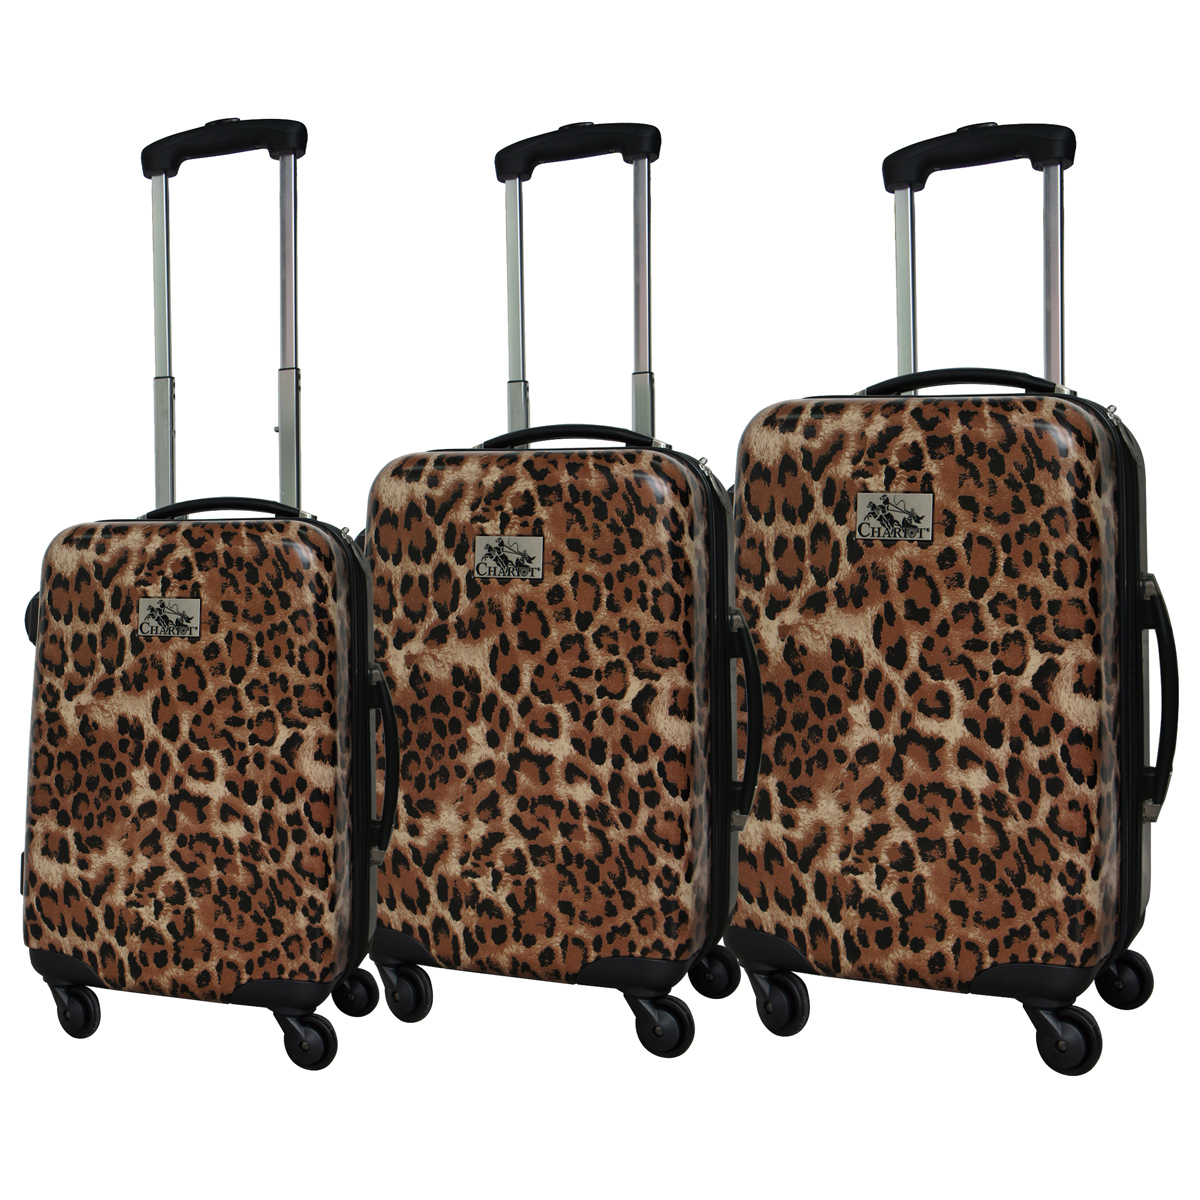 Chariot 3 Piece Hardside Lightweight Spinner Upright Luggage Set, Leopard, One Size